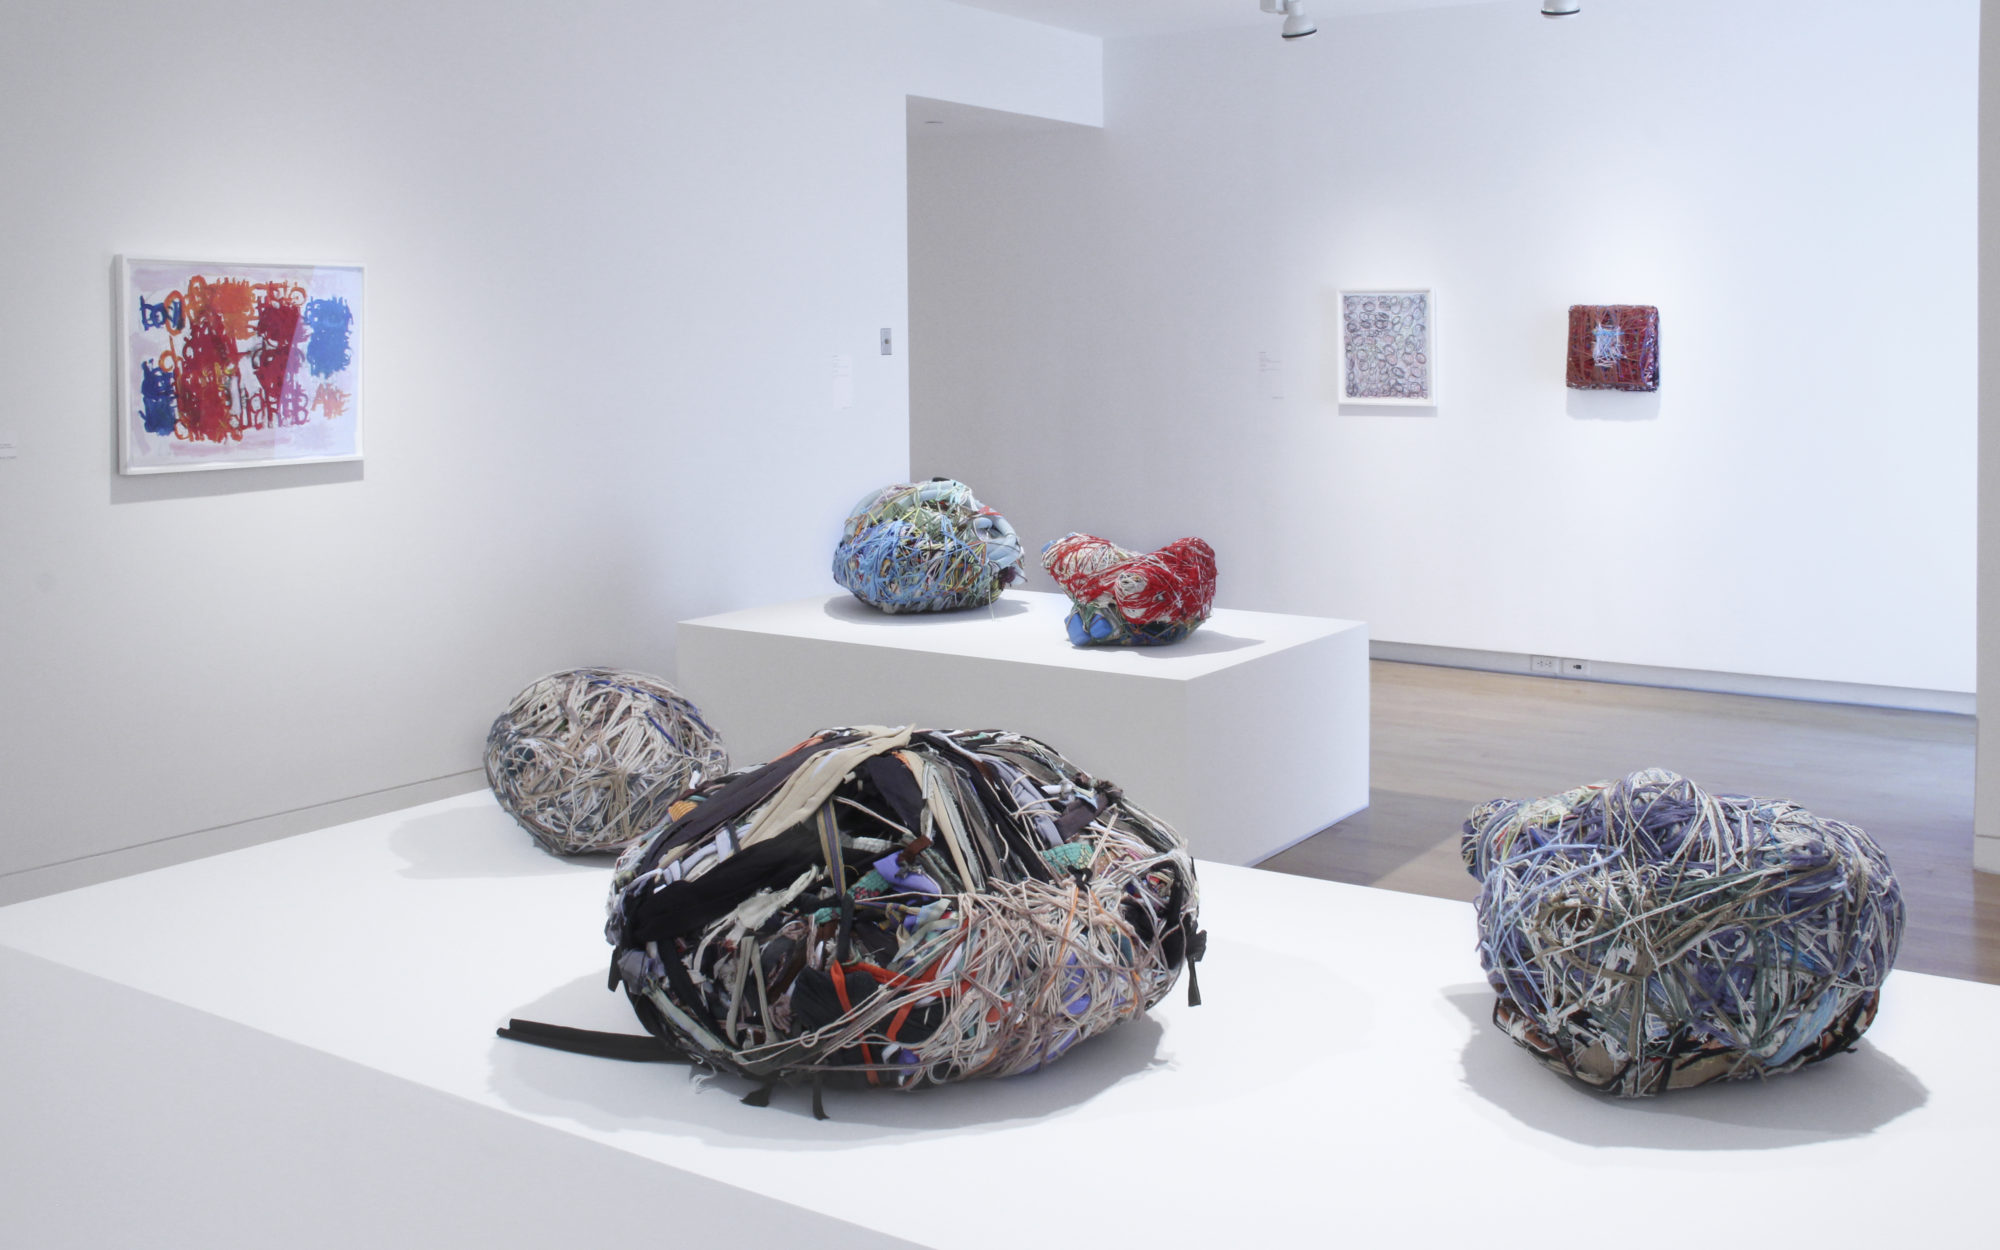 Sculptural objects on white platforms in gallery